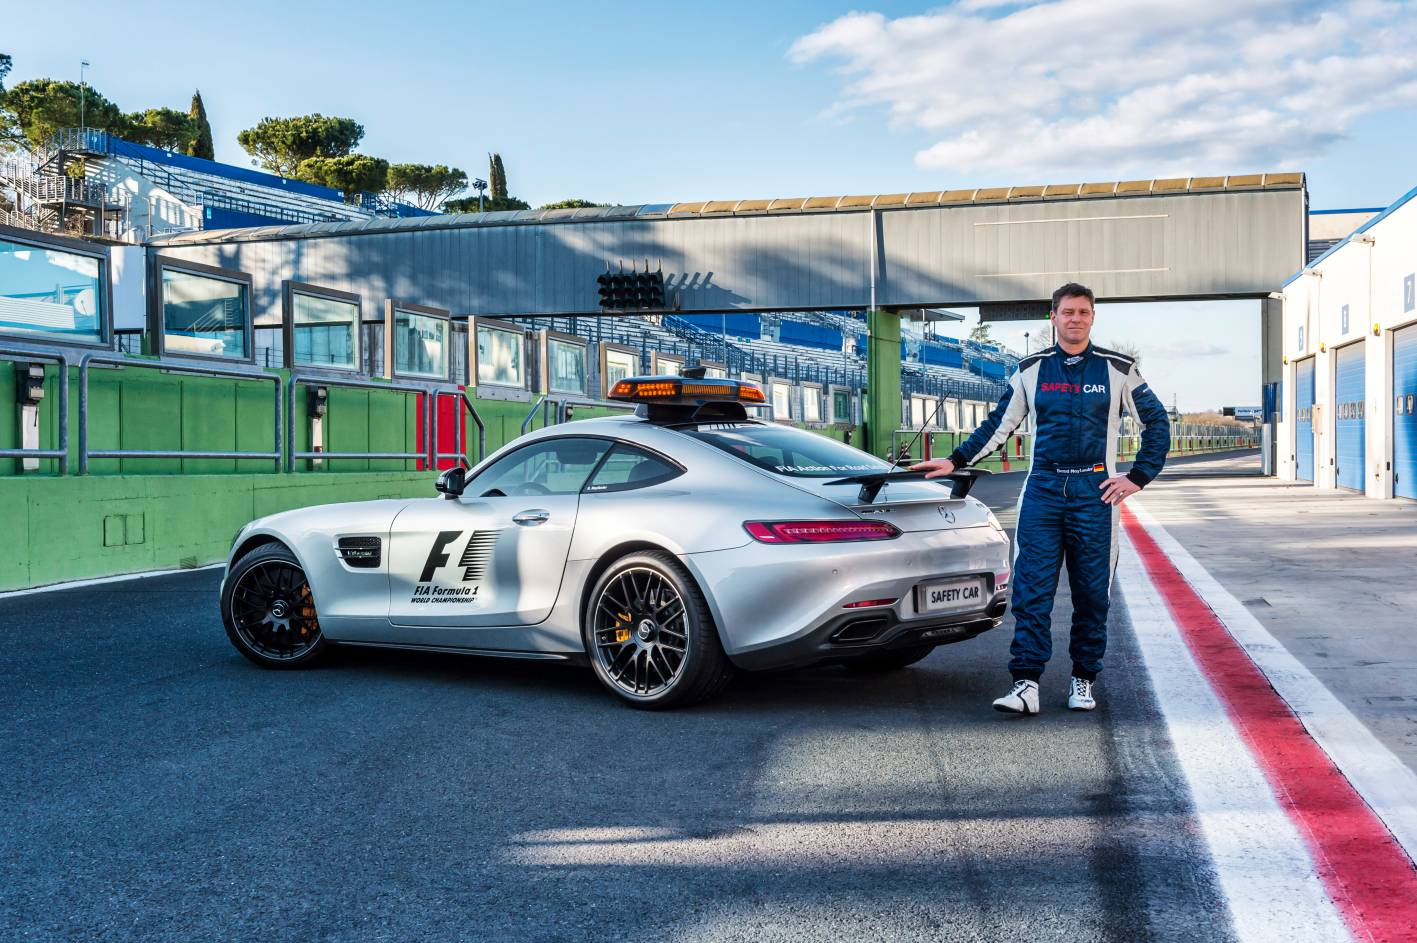 mercedes amg gt s and c 63 s as official cars for 2015 f1 season. Black Bedroom Furniture Sets. Home Design Ideas